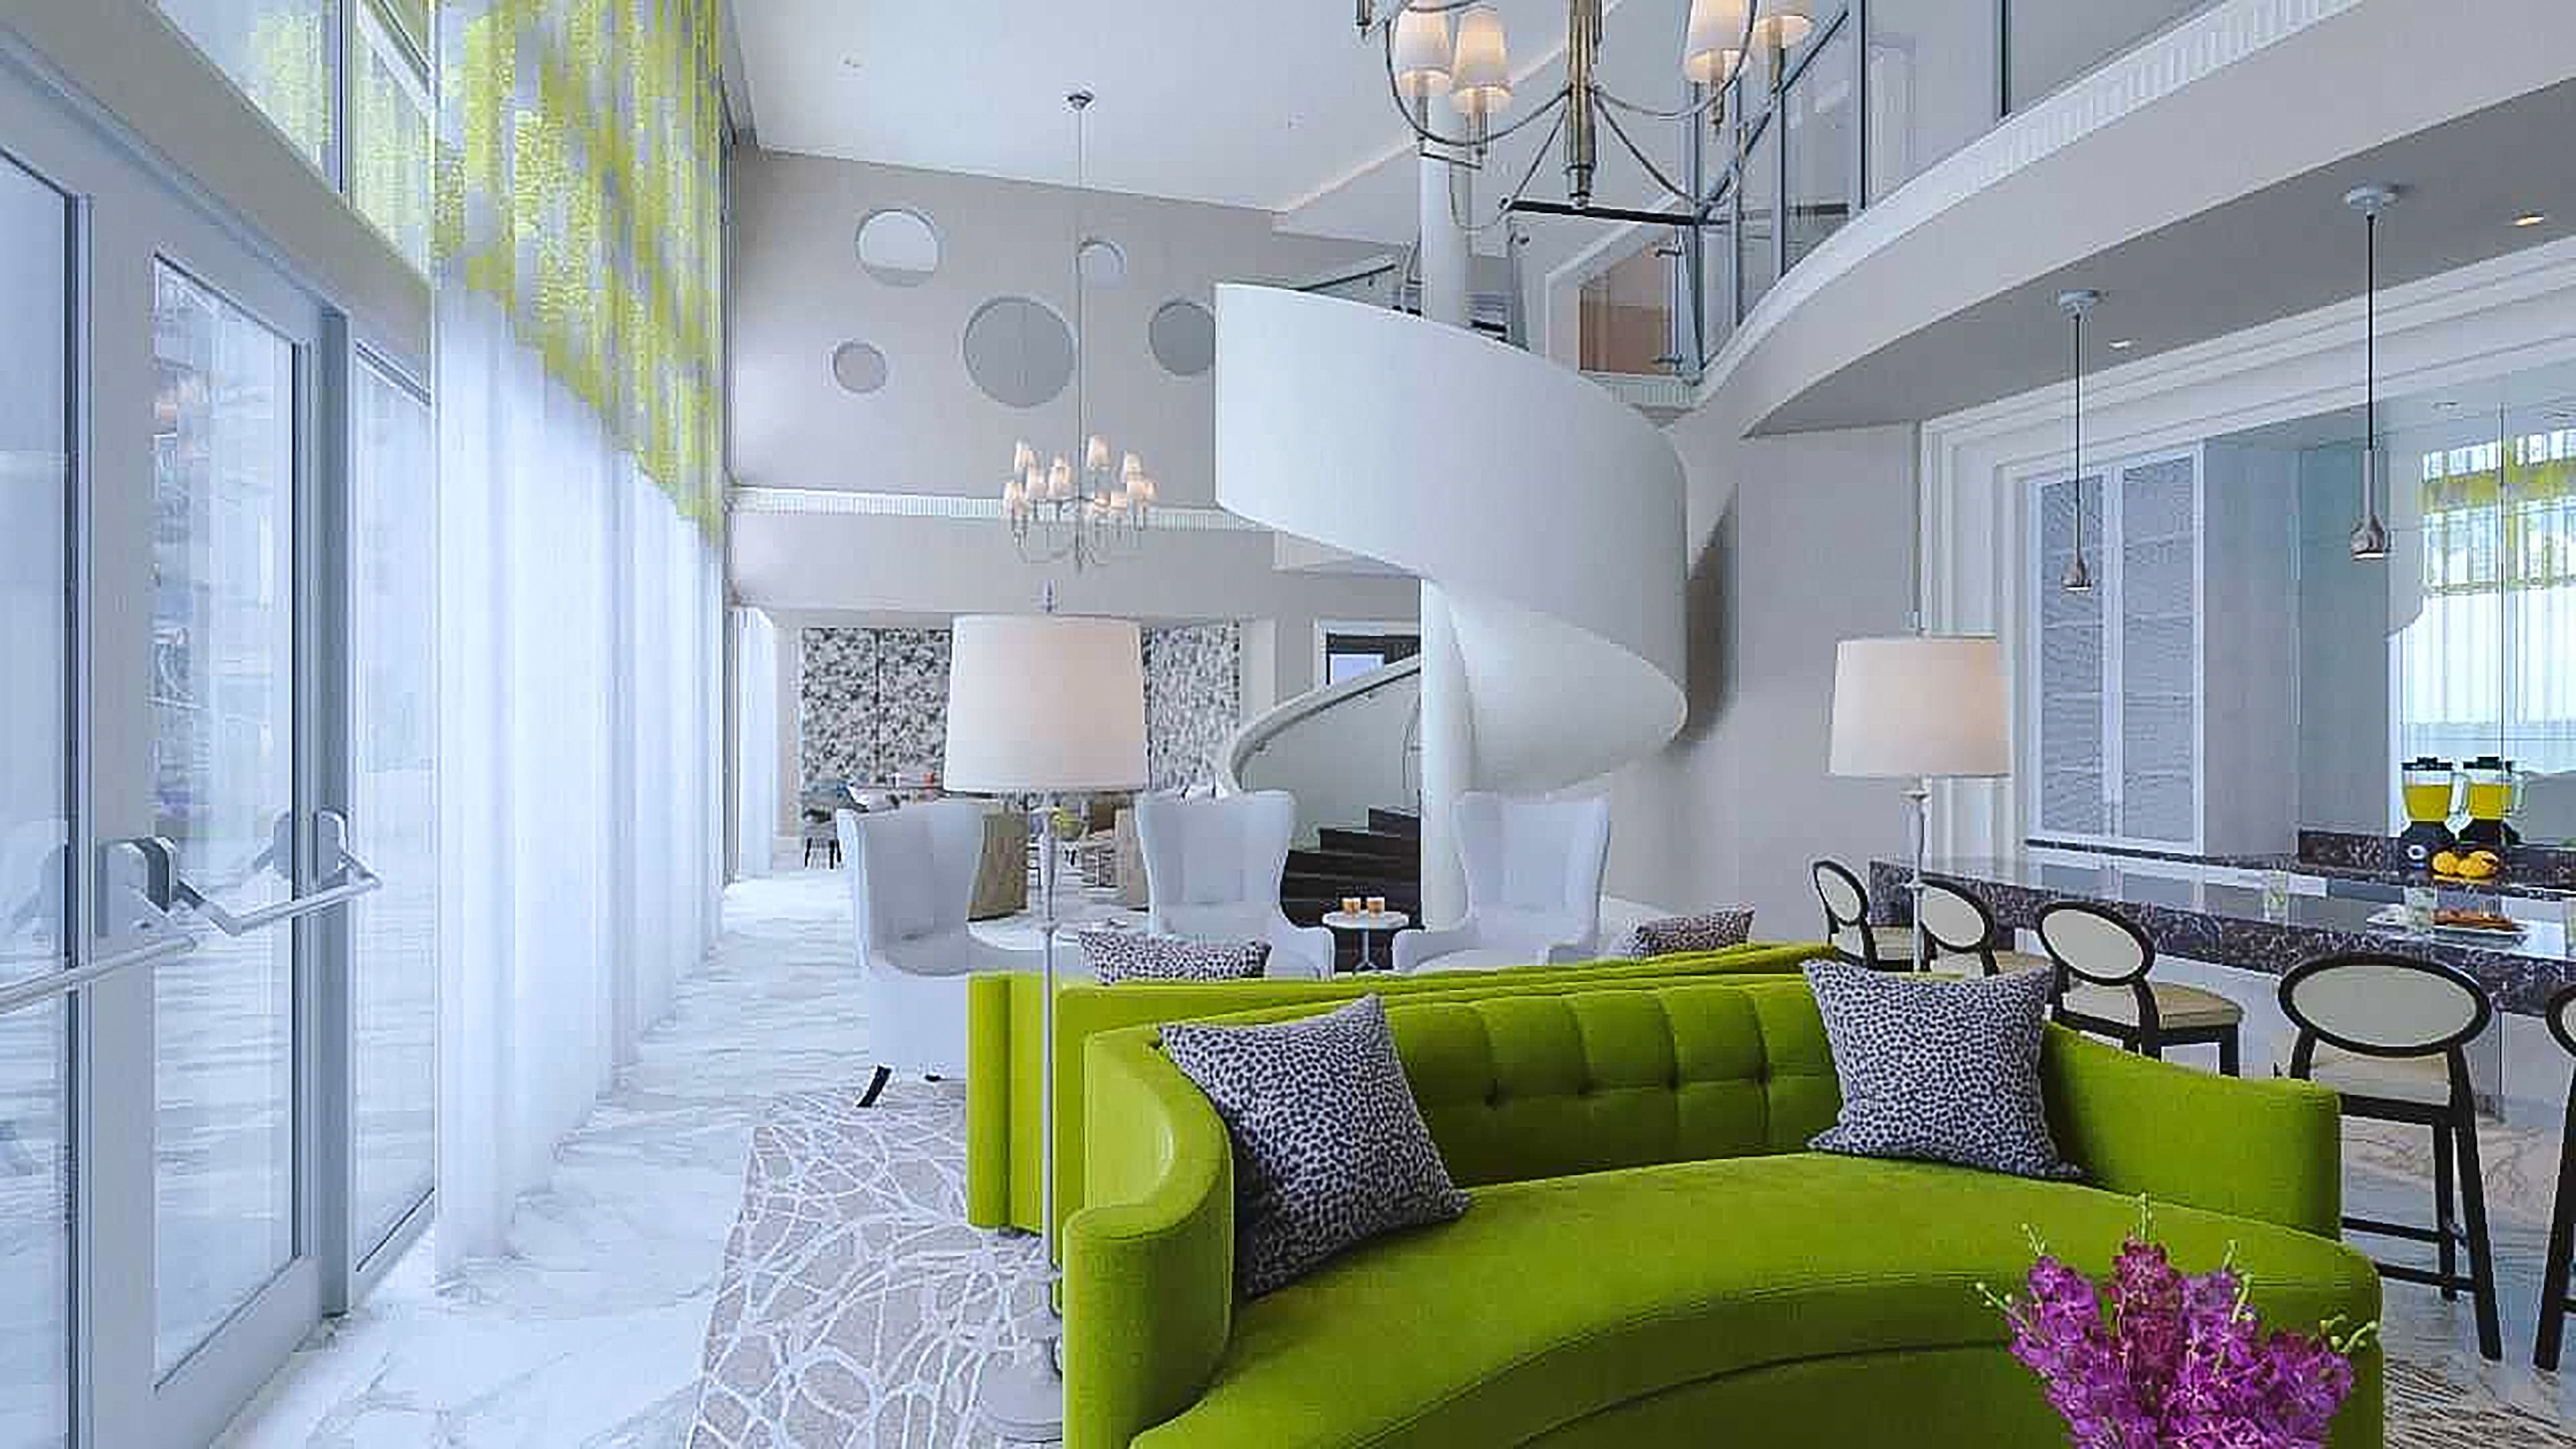 Apartment amenity space design by Beasley & Henley